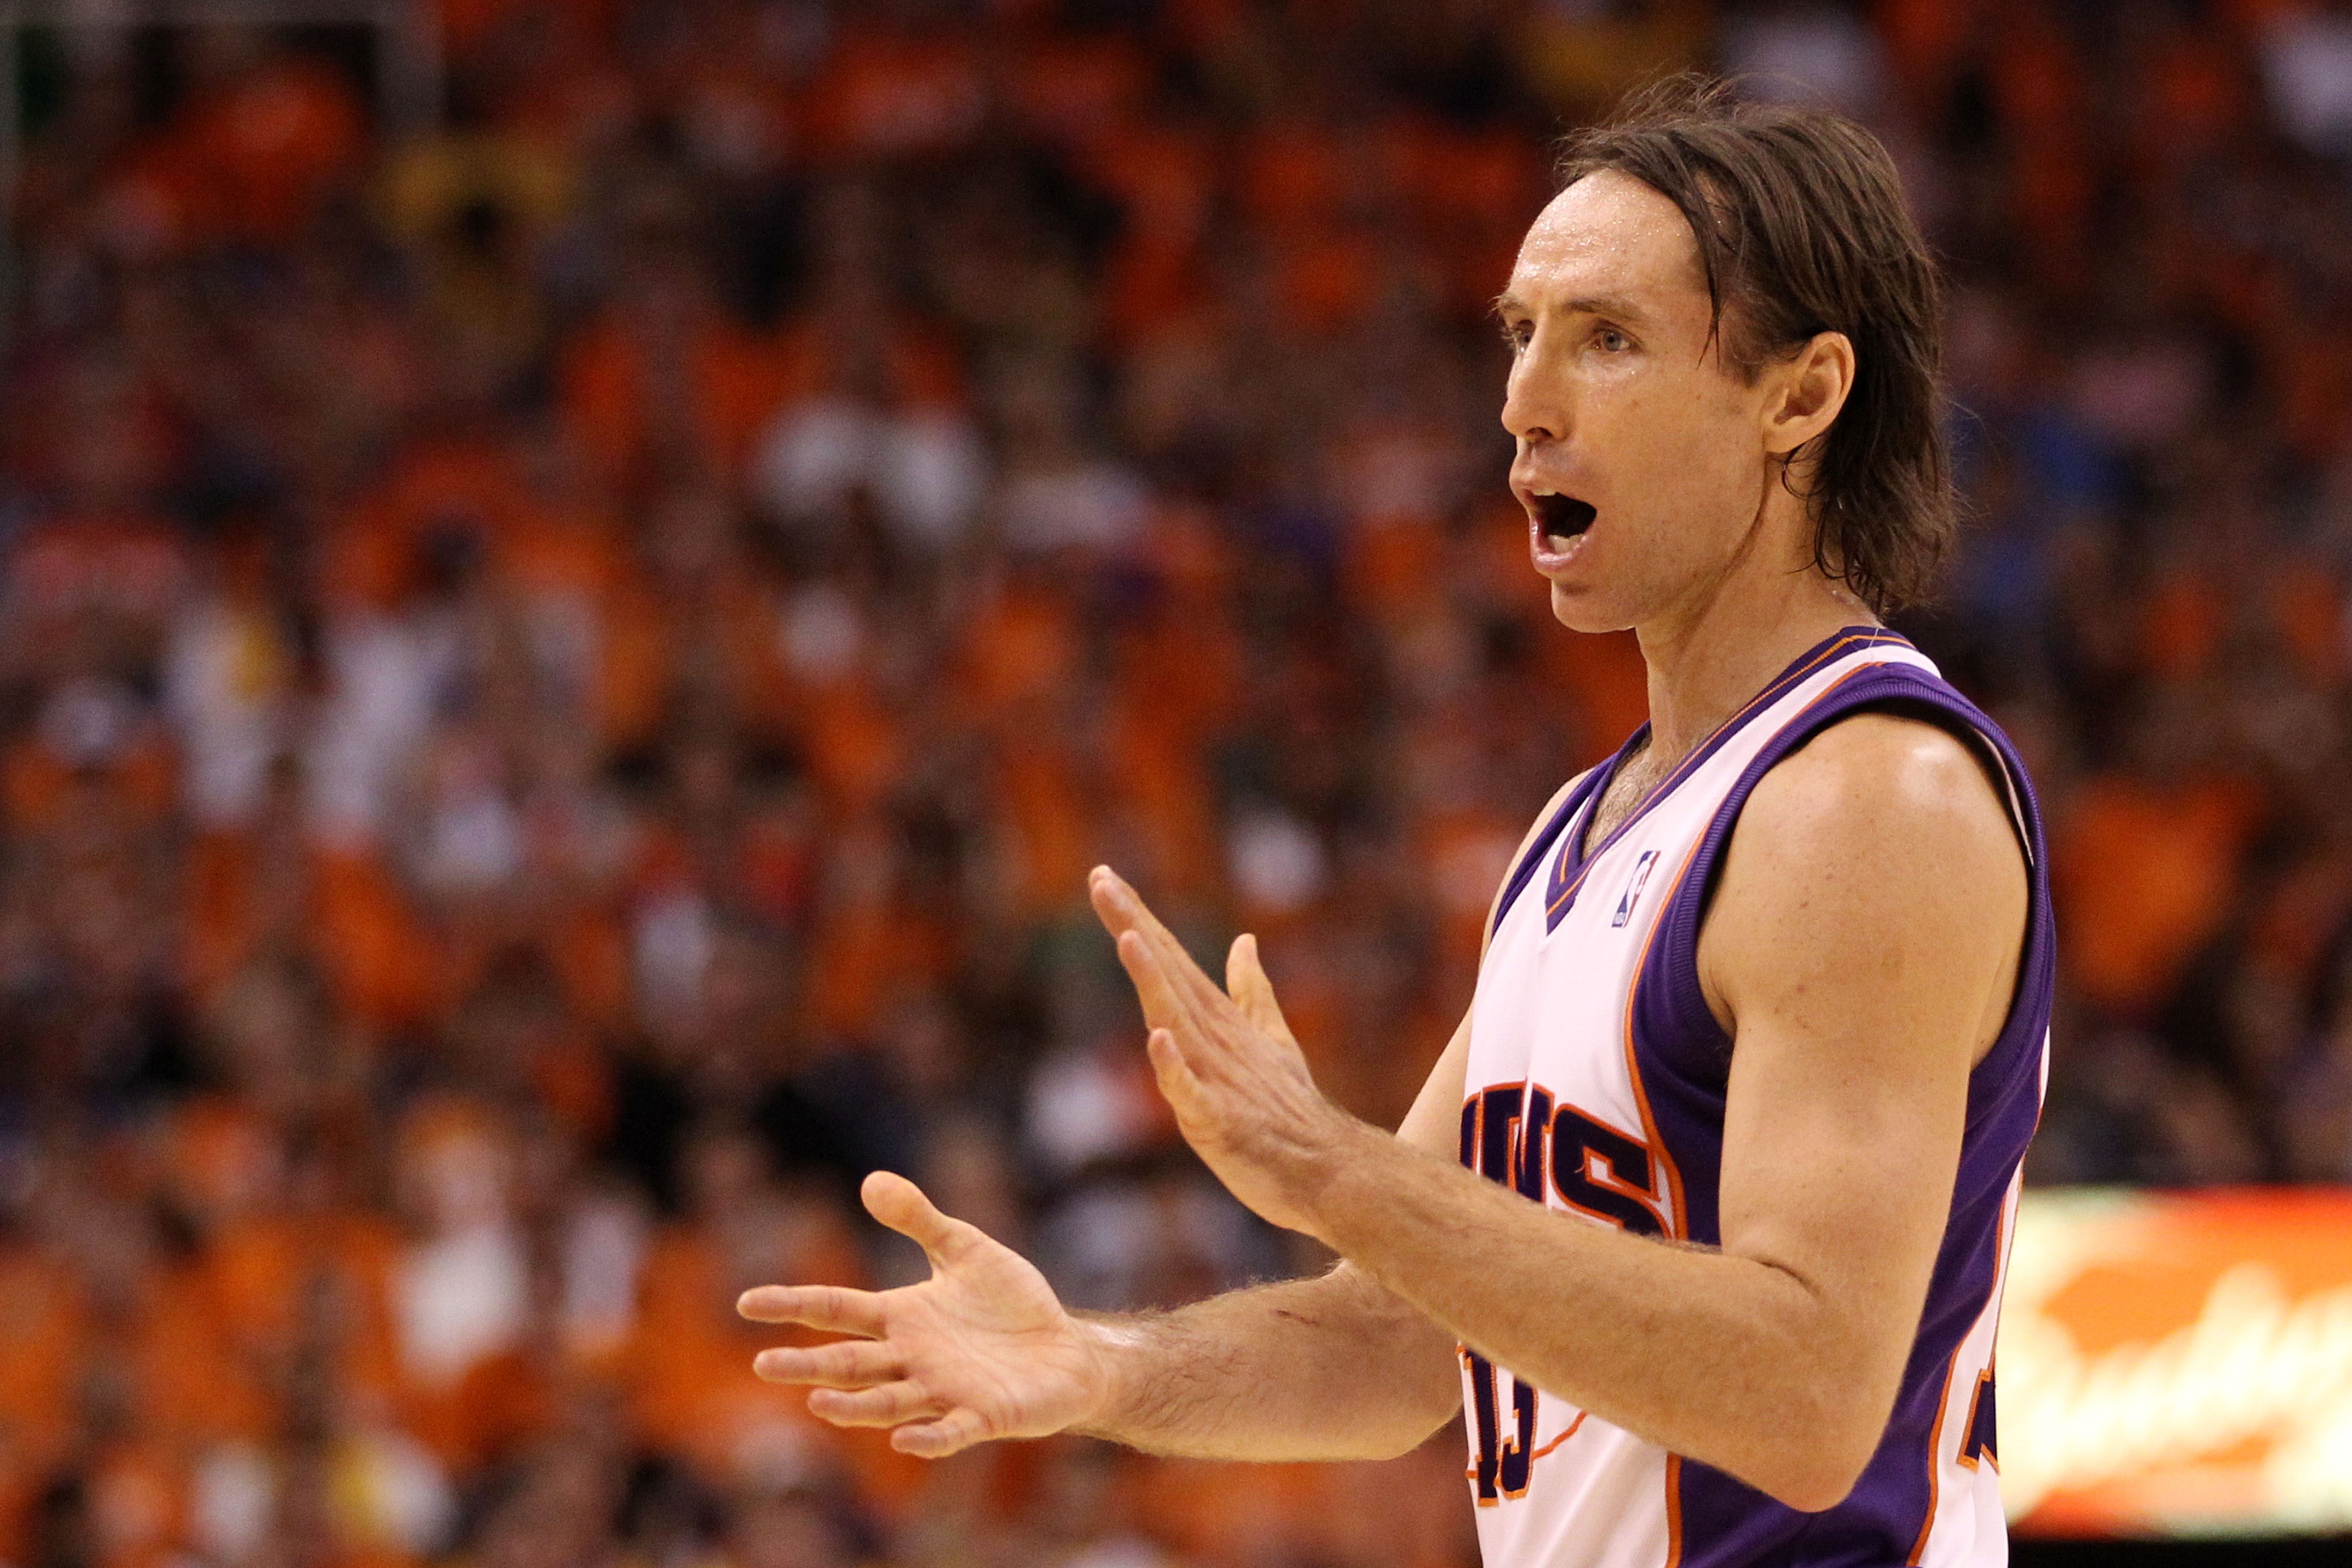 PHOENIX - MAY 29:  Steve Nash #13 of the Phoenix Suns encourages his team against the Los Angeles Lakers in the third quarter of Game Six of the Western Conference Finals during the 2010 NBA Playoffs at US Airways Center on May 29, 2010 in Phoenix, Arizon